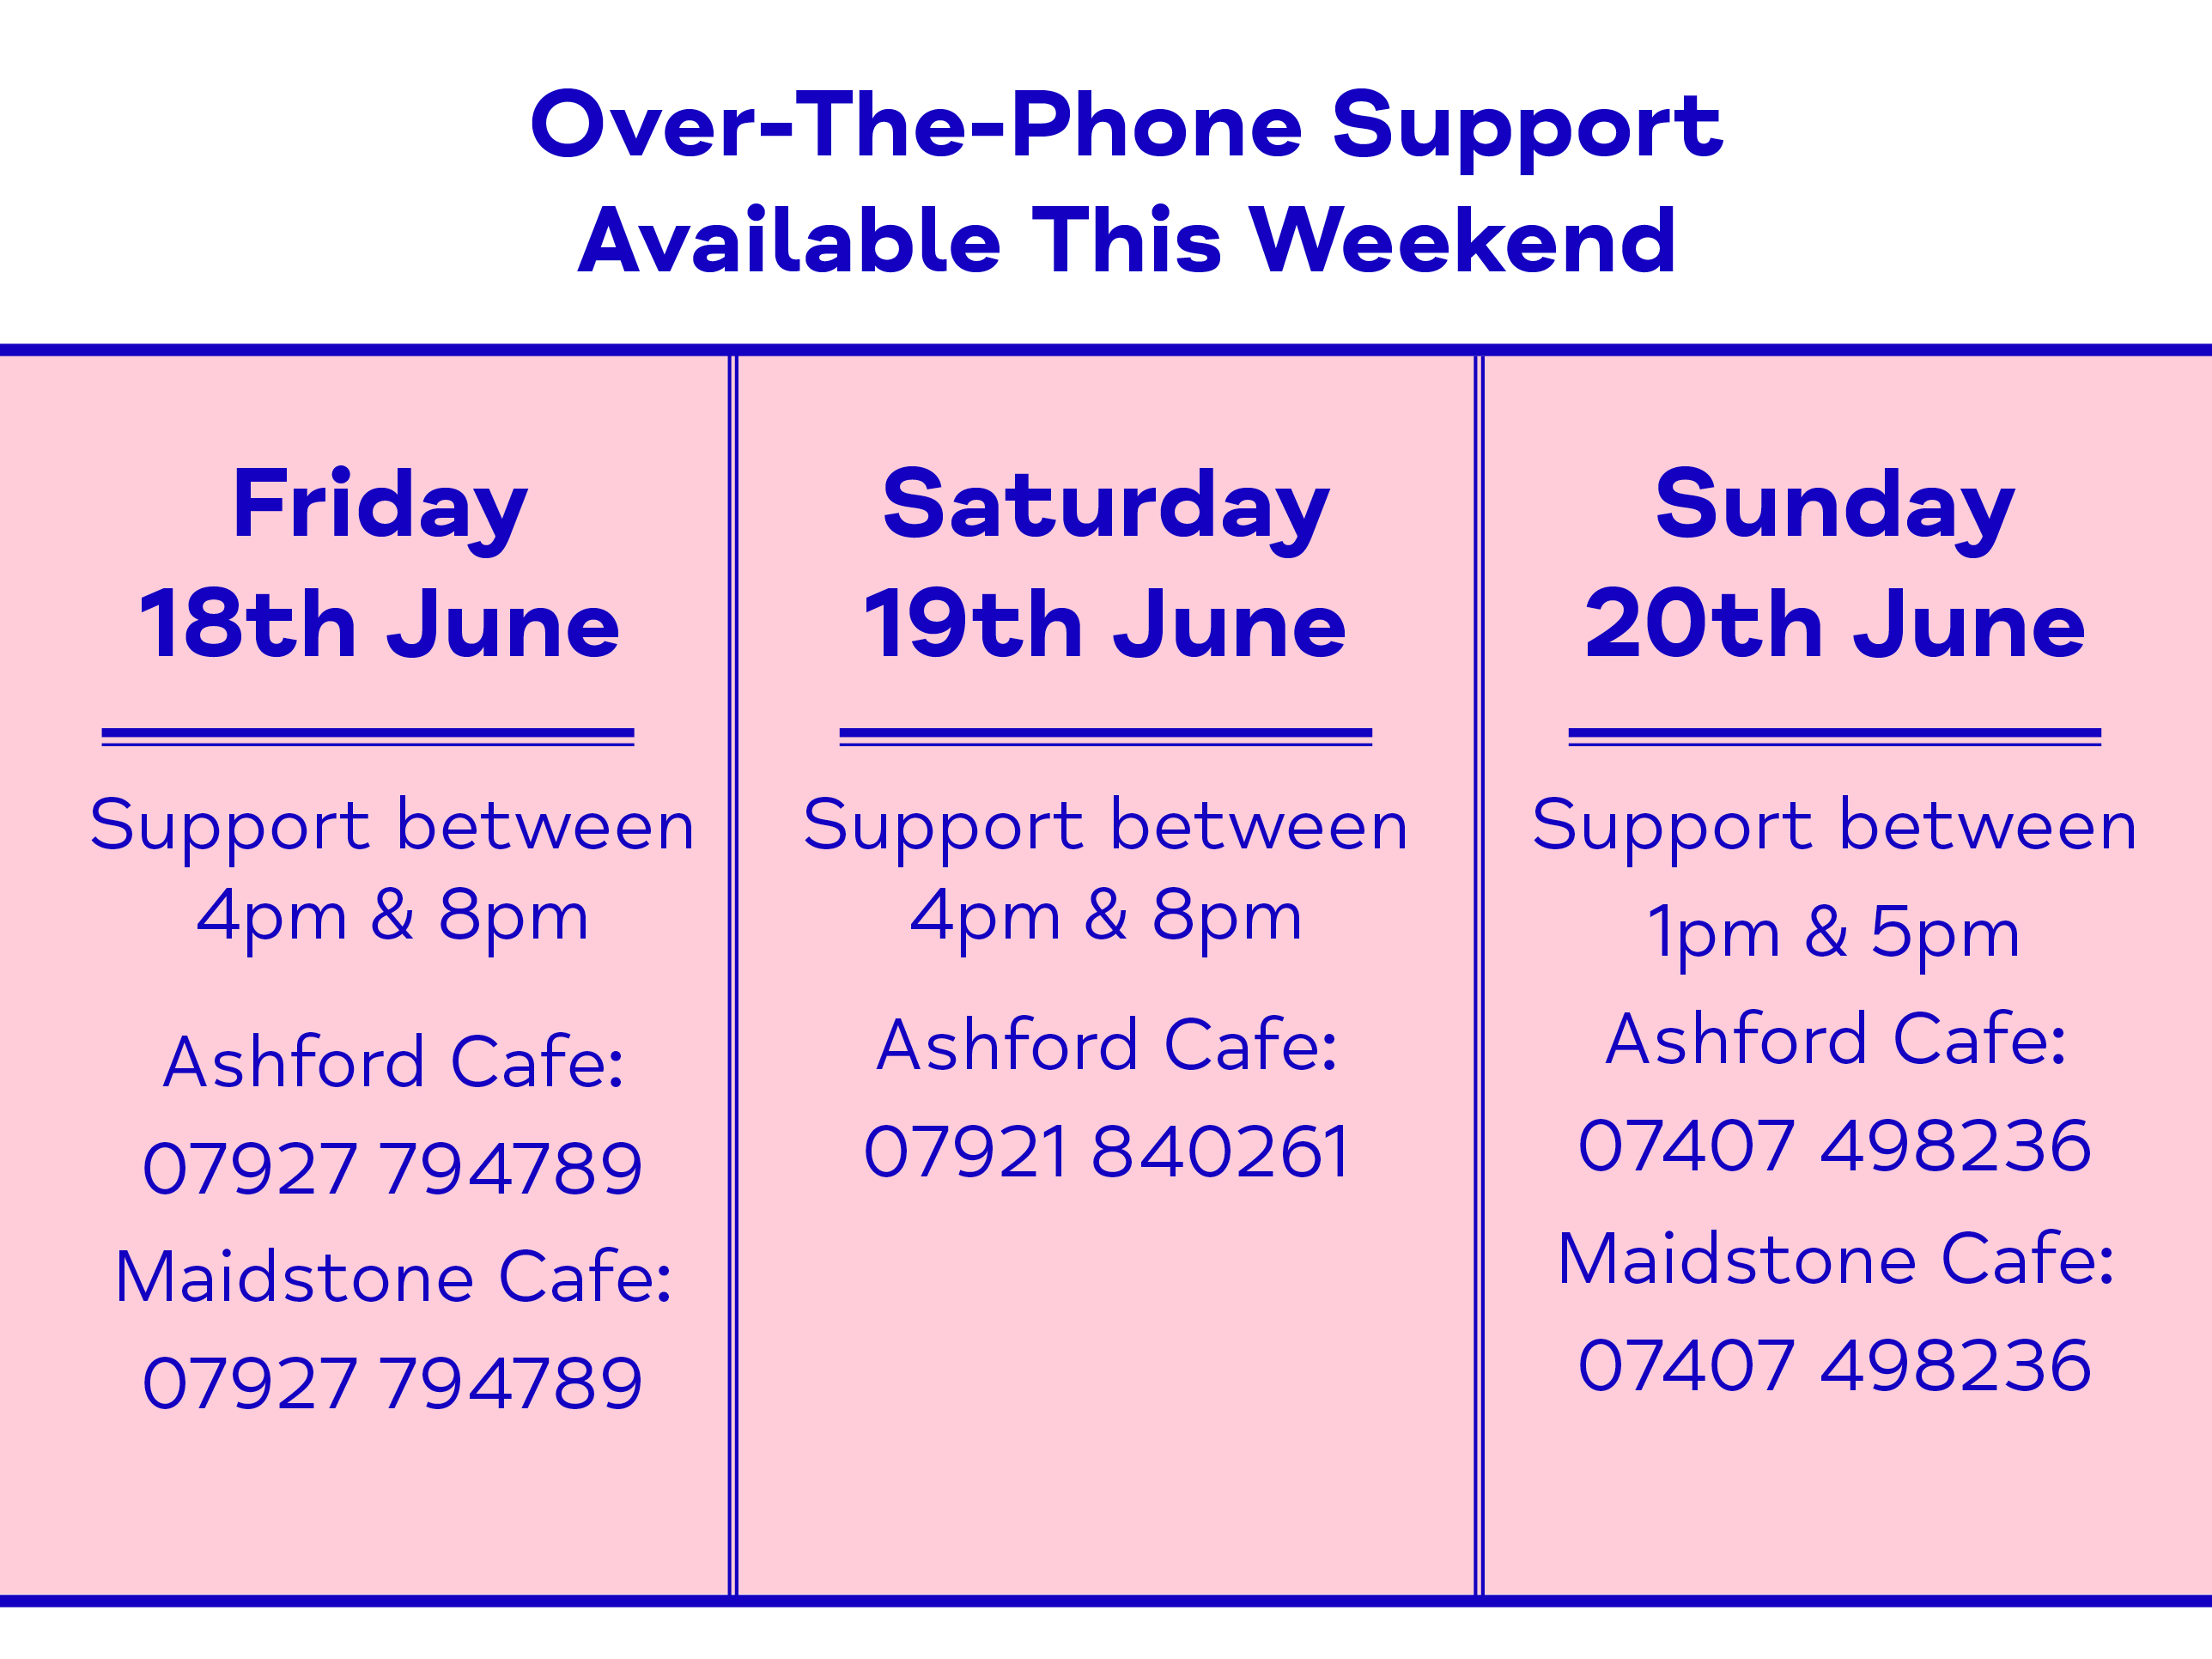 Over-The-Phone Support Available This Weekend - Friday 18th June. Support between 4pm & 8pm Ashford Cafe: 07927 794789 Maidstone Cafe: 07927 794789. Saturday 19th June. Support between 4pm & 8pm Ashford Cafe: 07921 840261. Sunday 20th June. Support between 1pm & 5pm Ashford Cafe: 07407 498236 Maidstone Cafe: 07407 498236